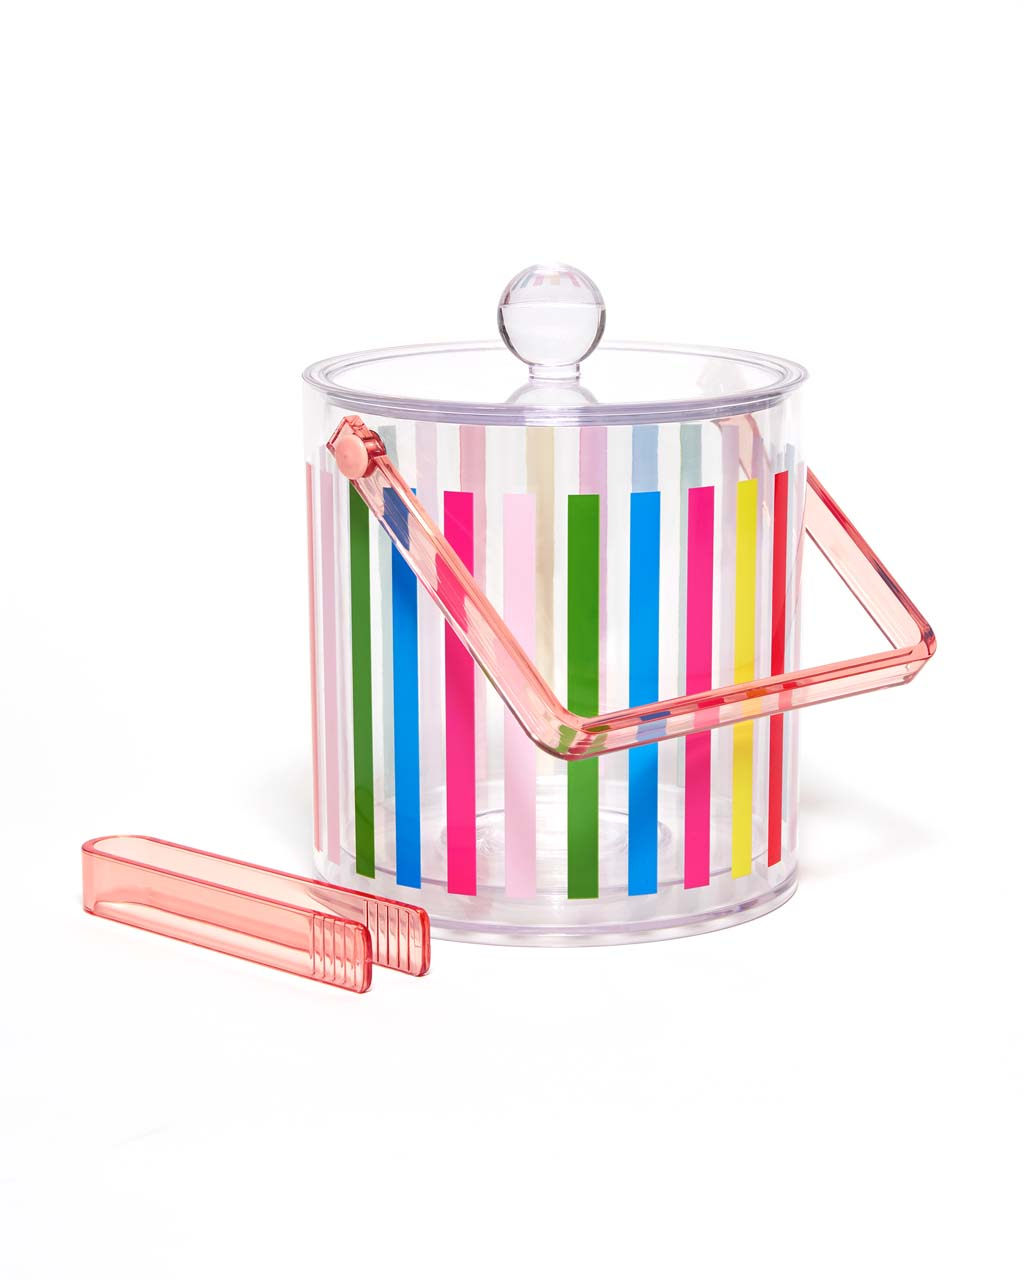 The Party On Ice Bucket is clear, with rainbow vertical stripes on the outside.